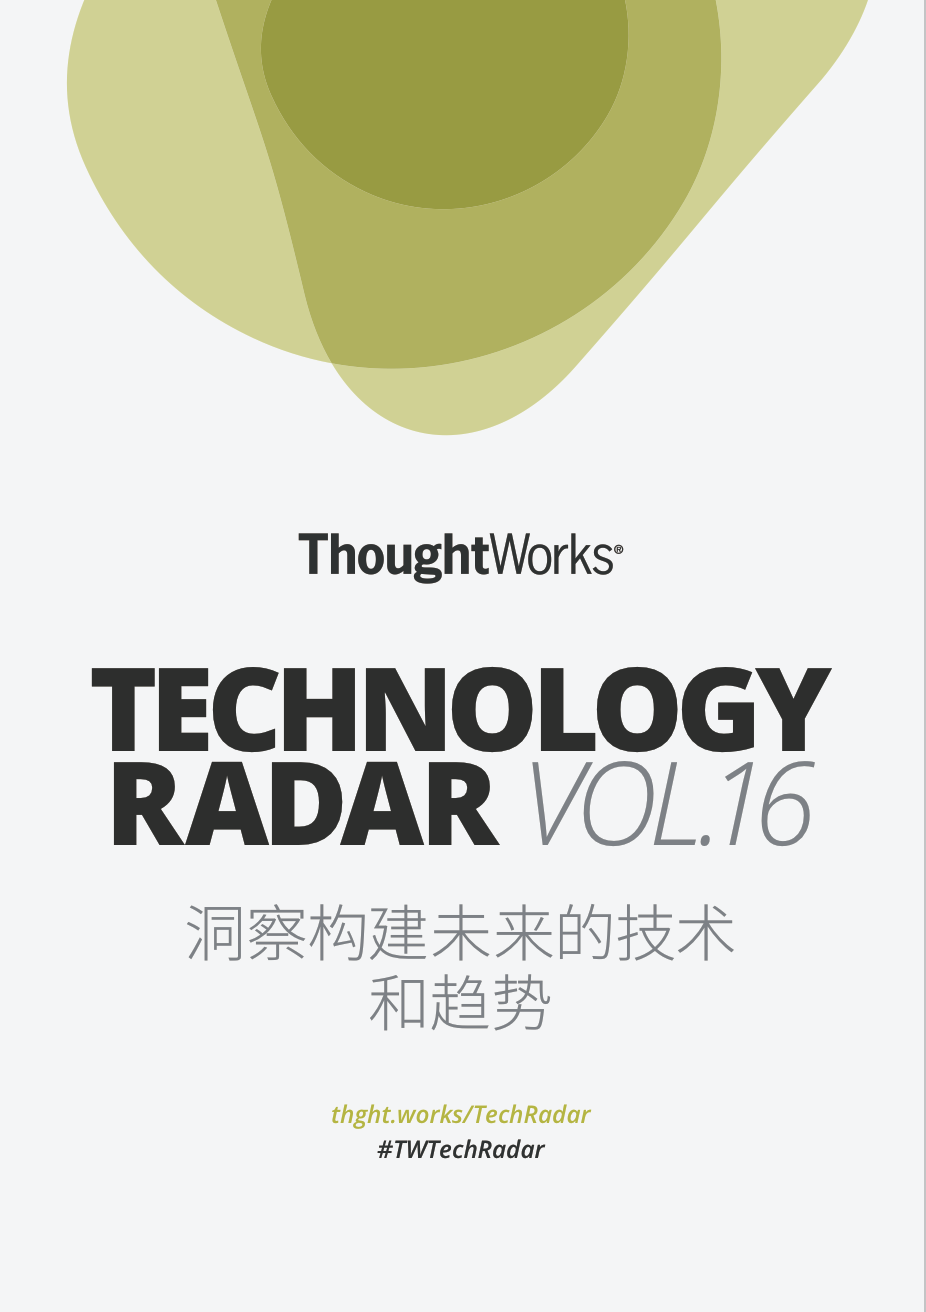 Technology Radar Vol.16